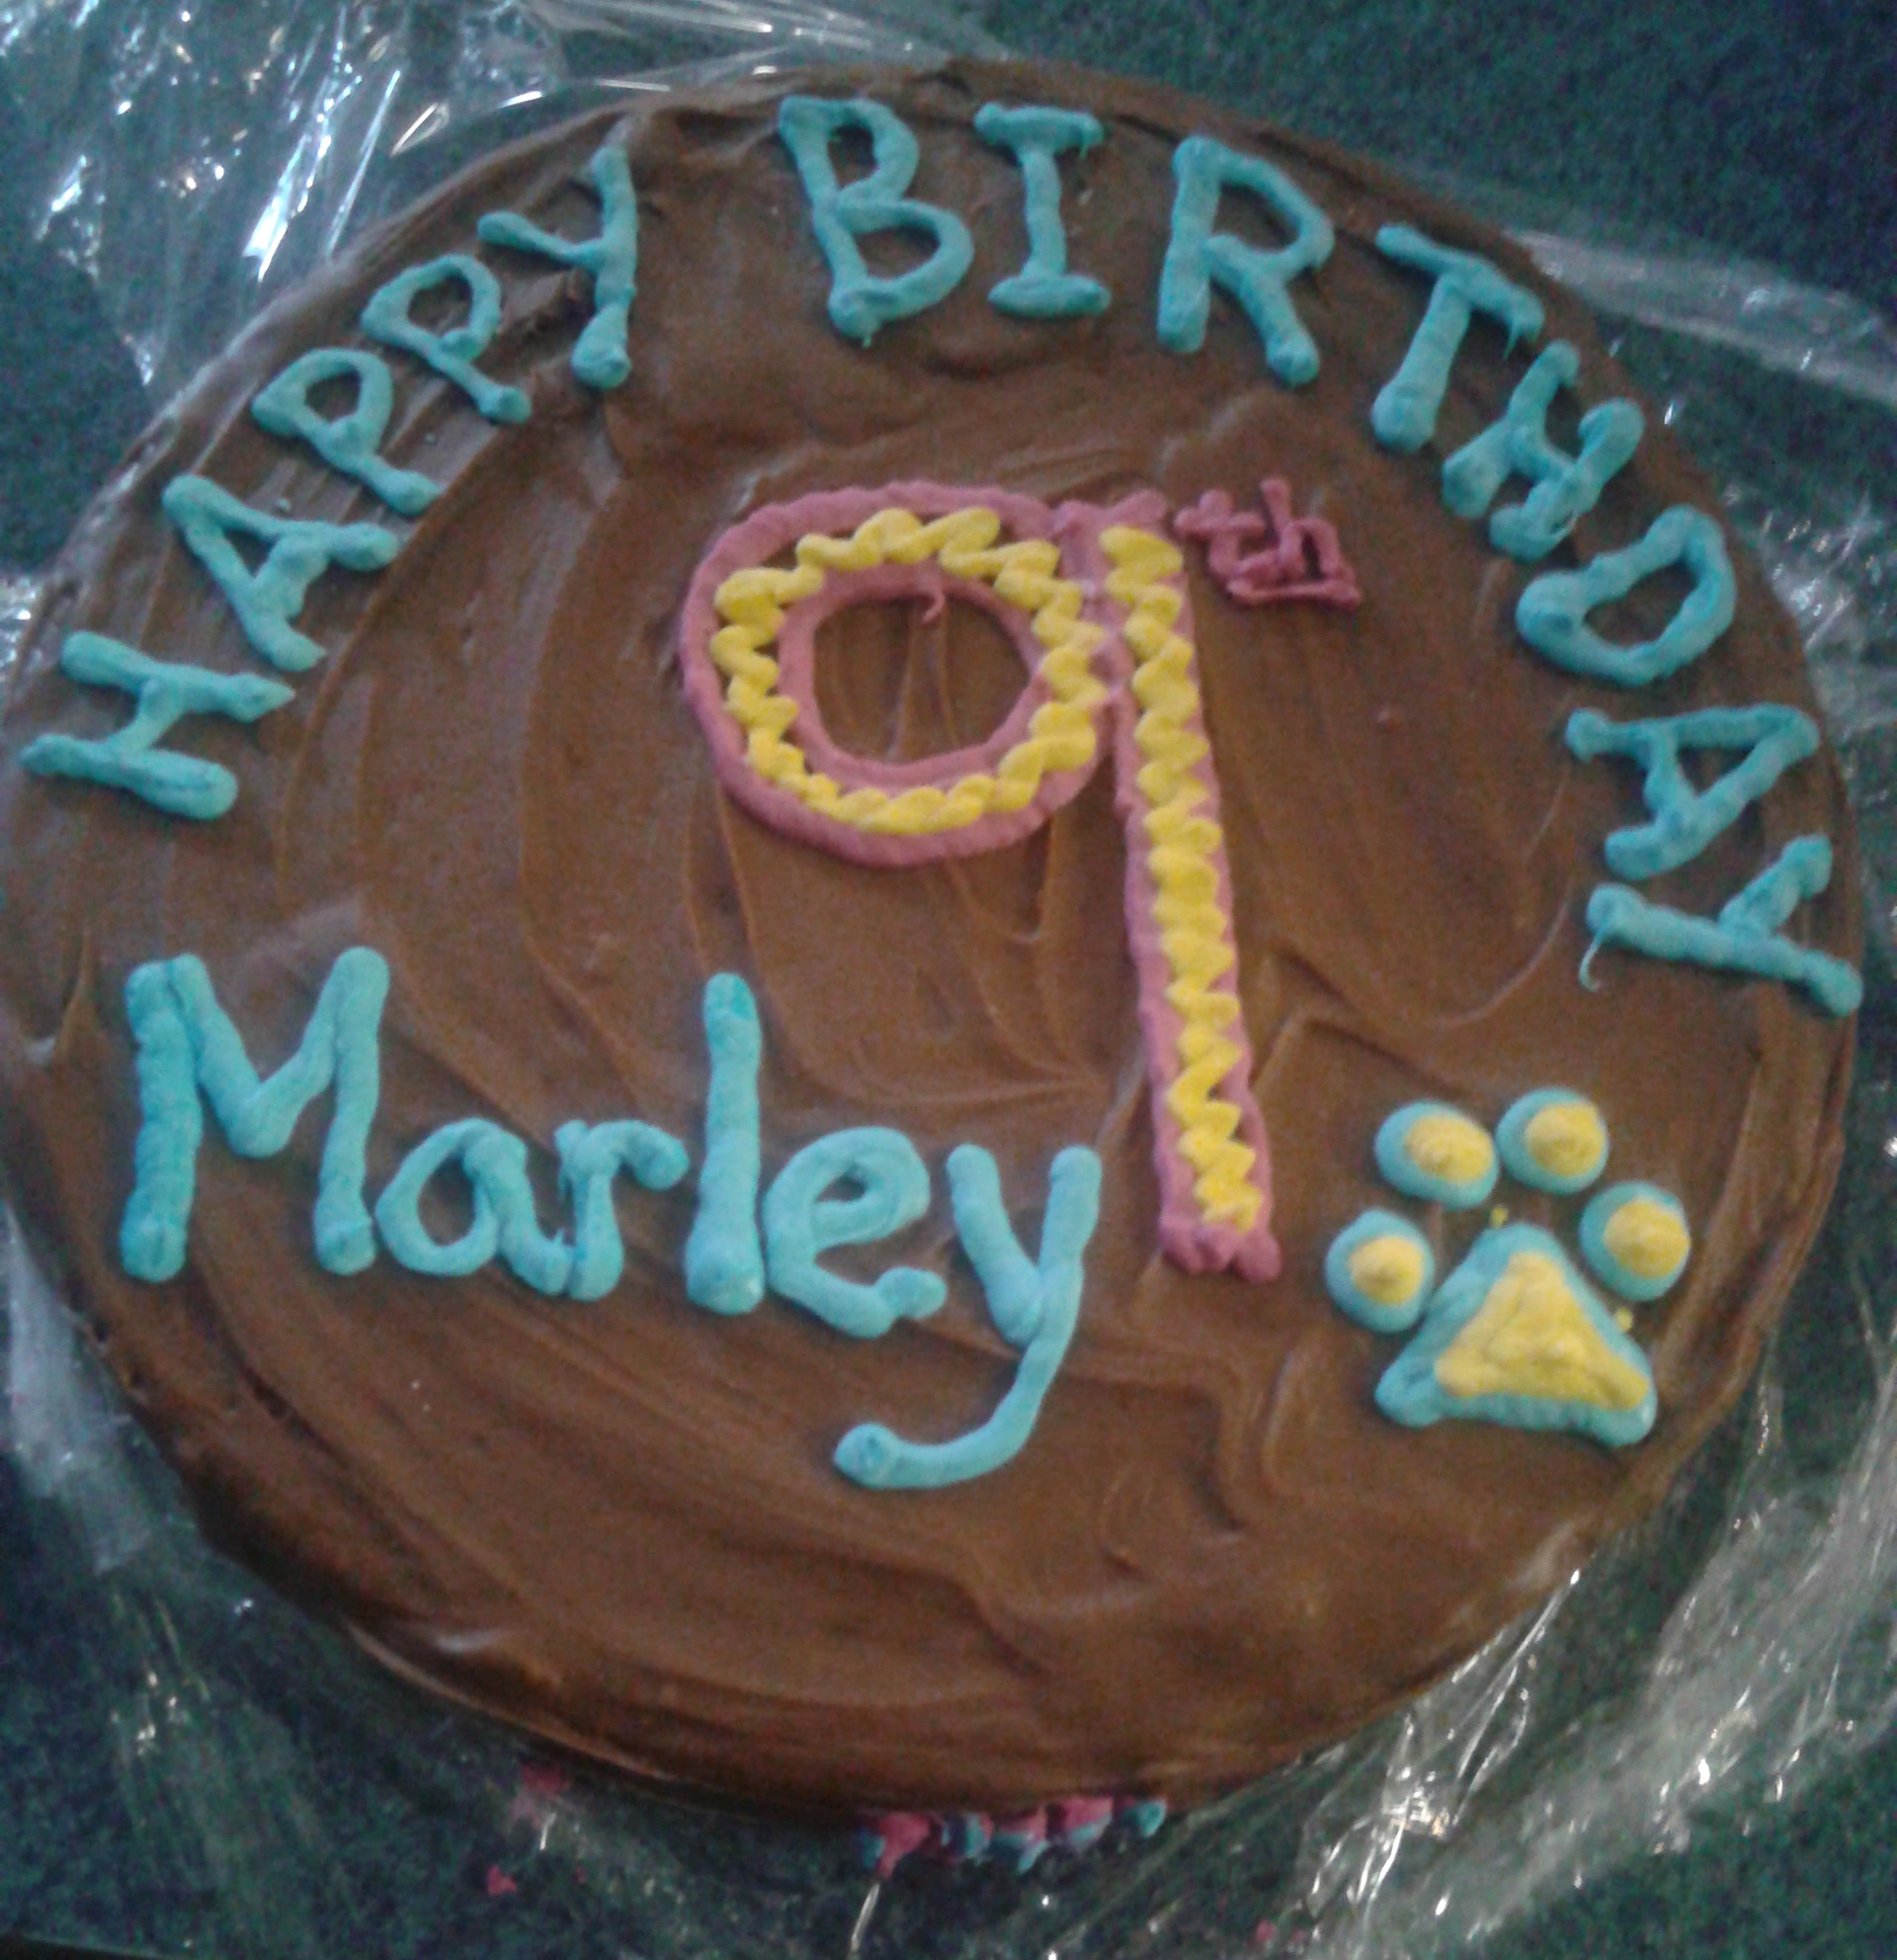 Dog Safe Cake Decorations : Doggy Style Bakery, Boutique & Pet Spa